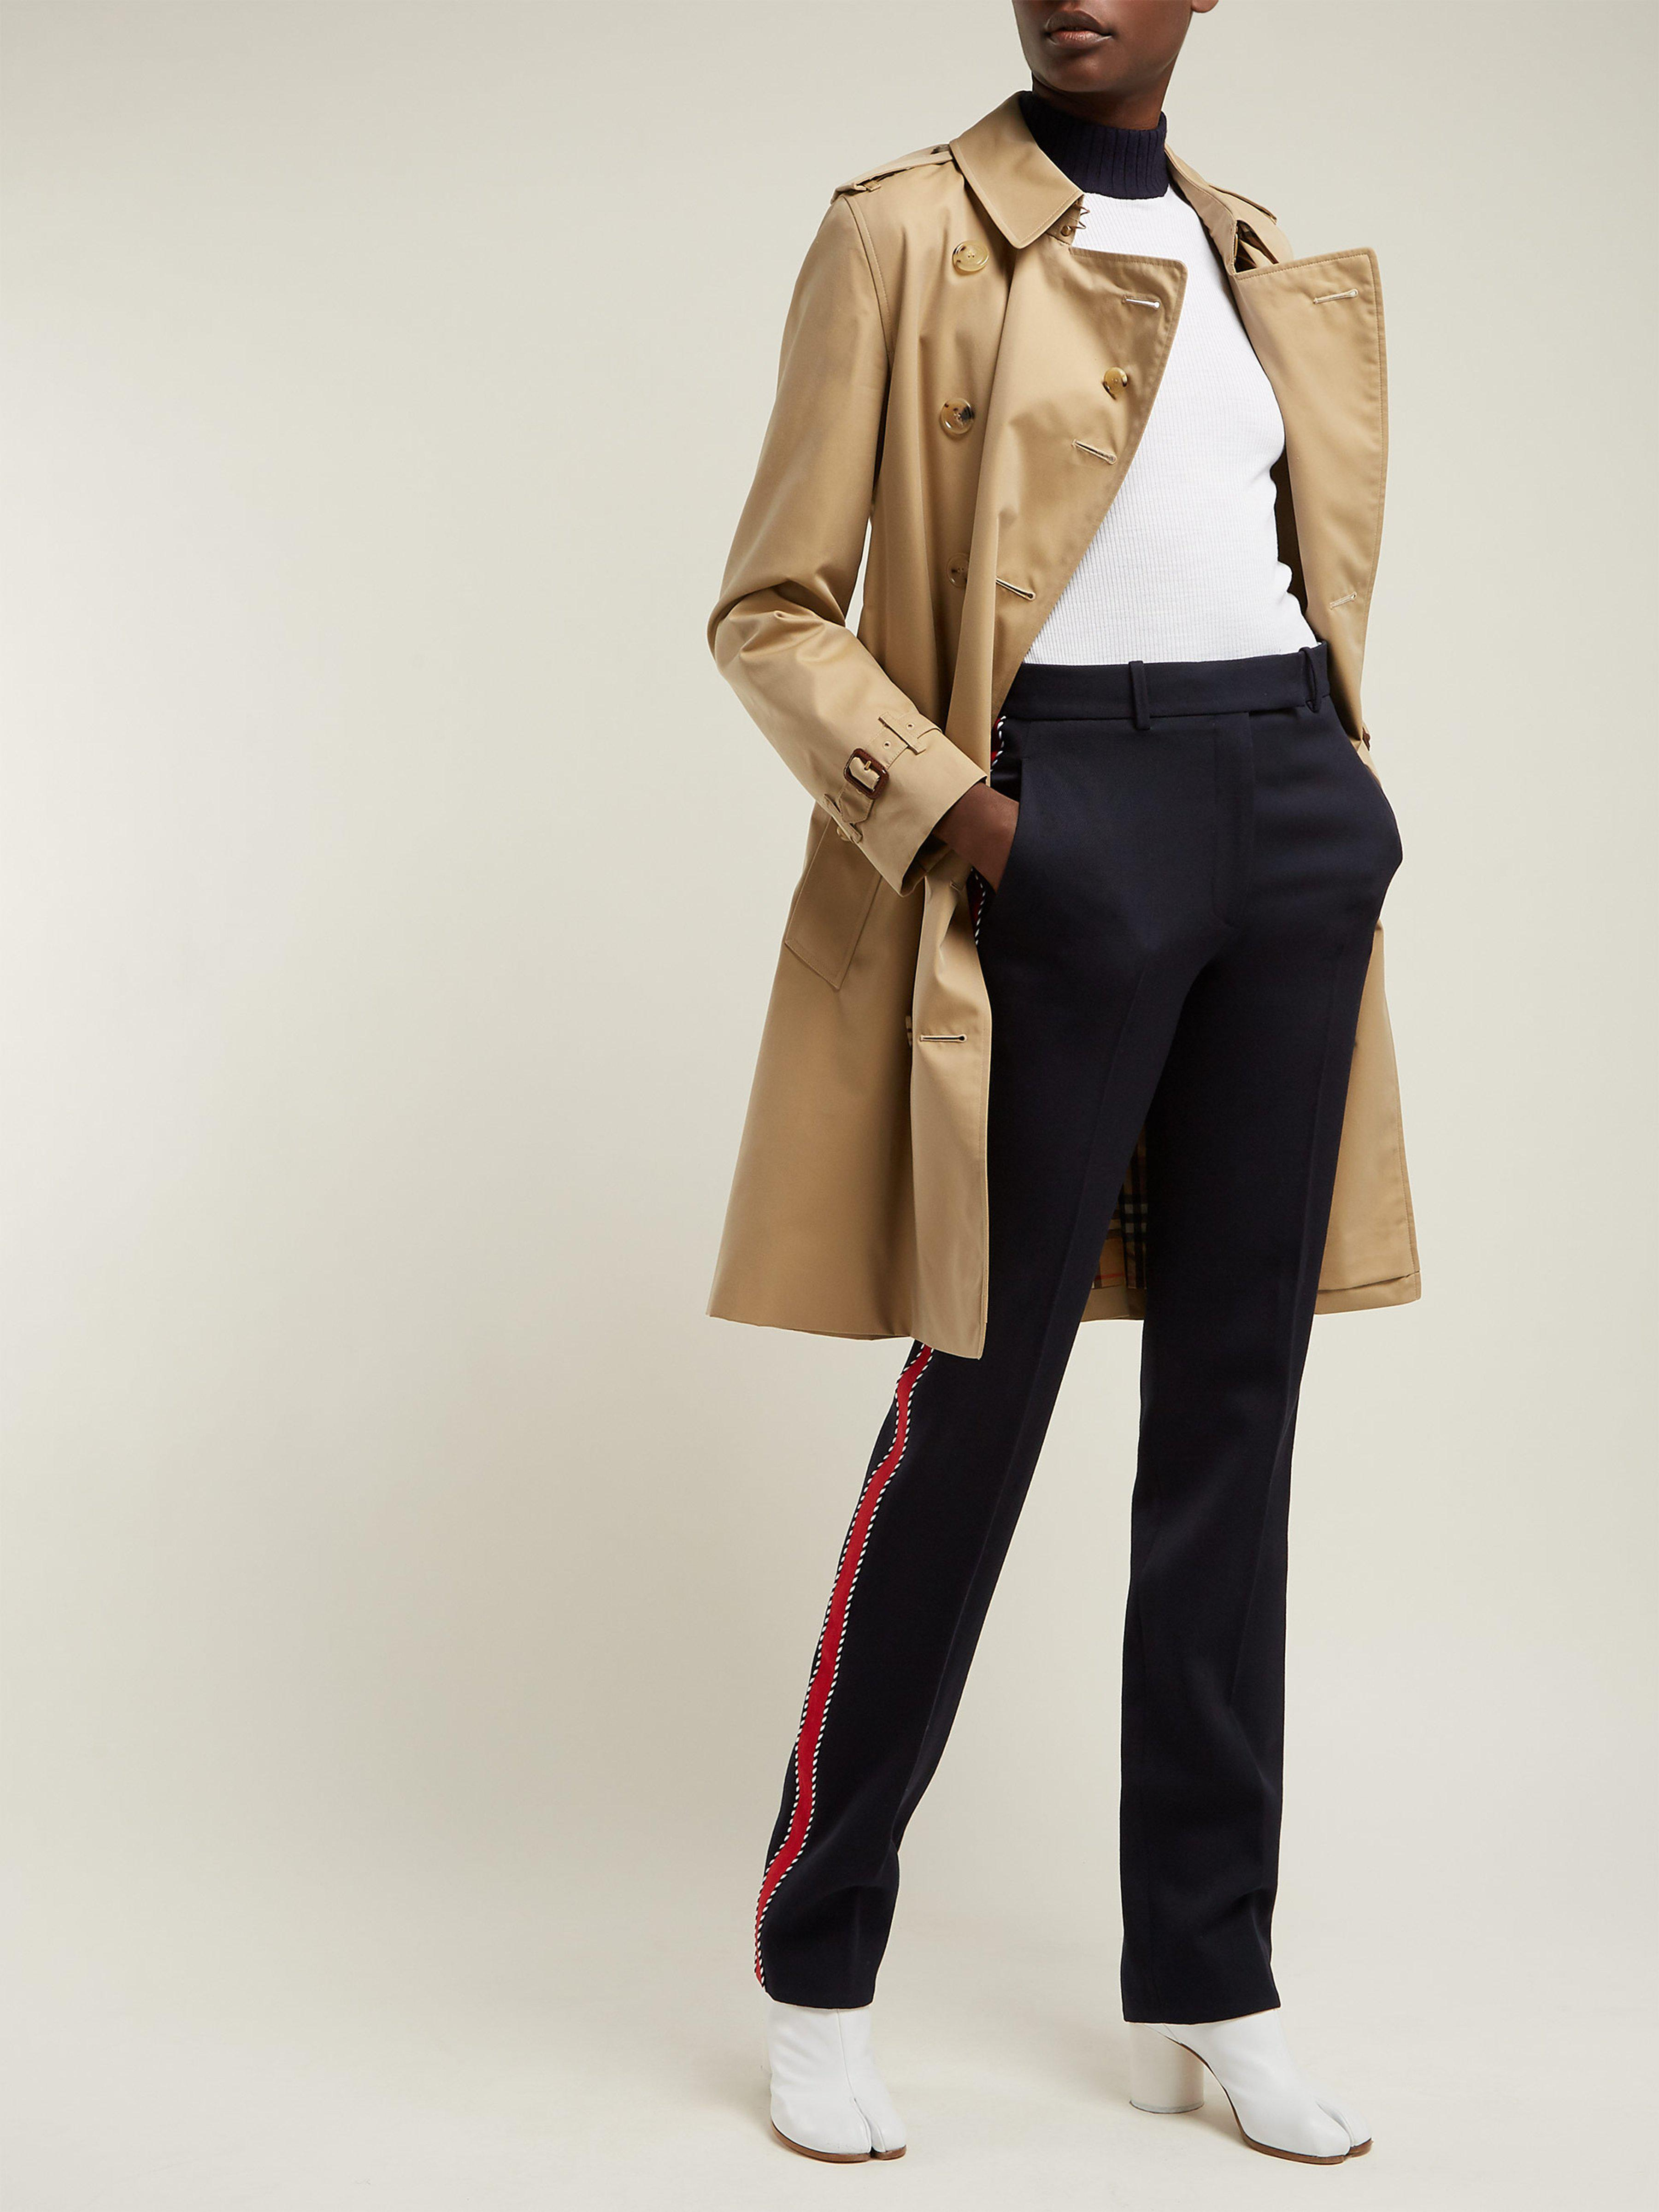 674aac7d9 Burberry Kensington Cotton Gabardine Trench Coat in Natural - Lyst